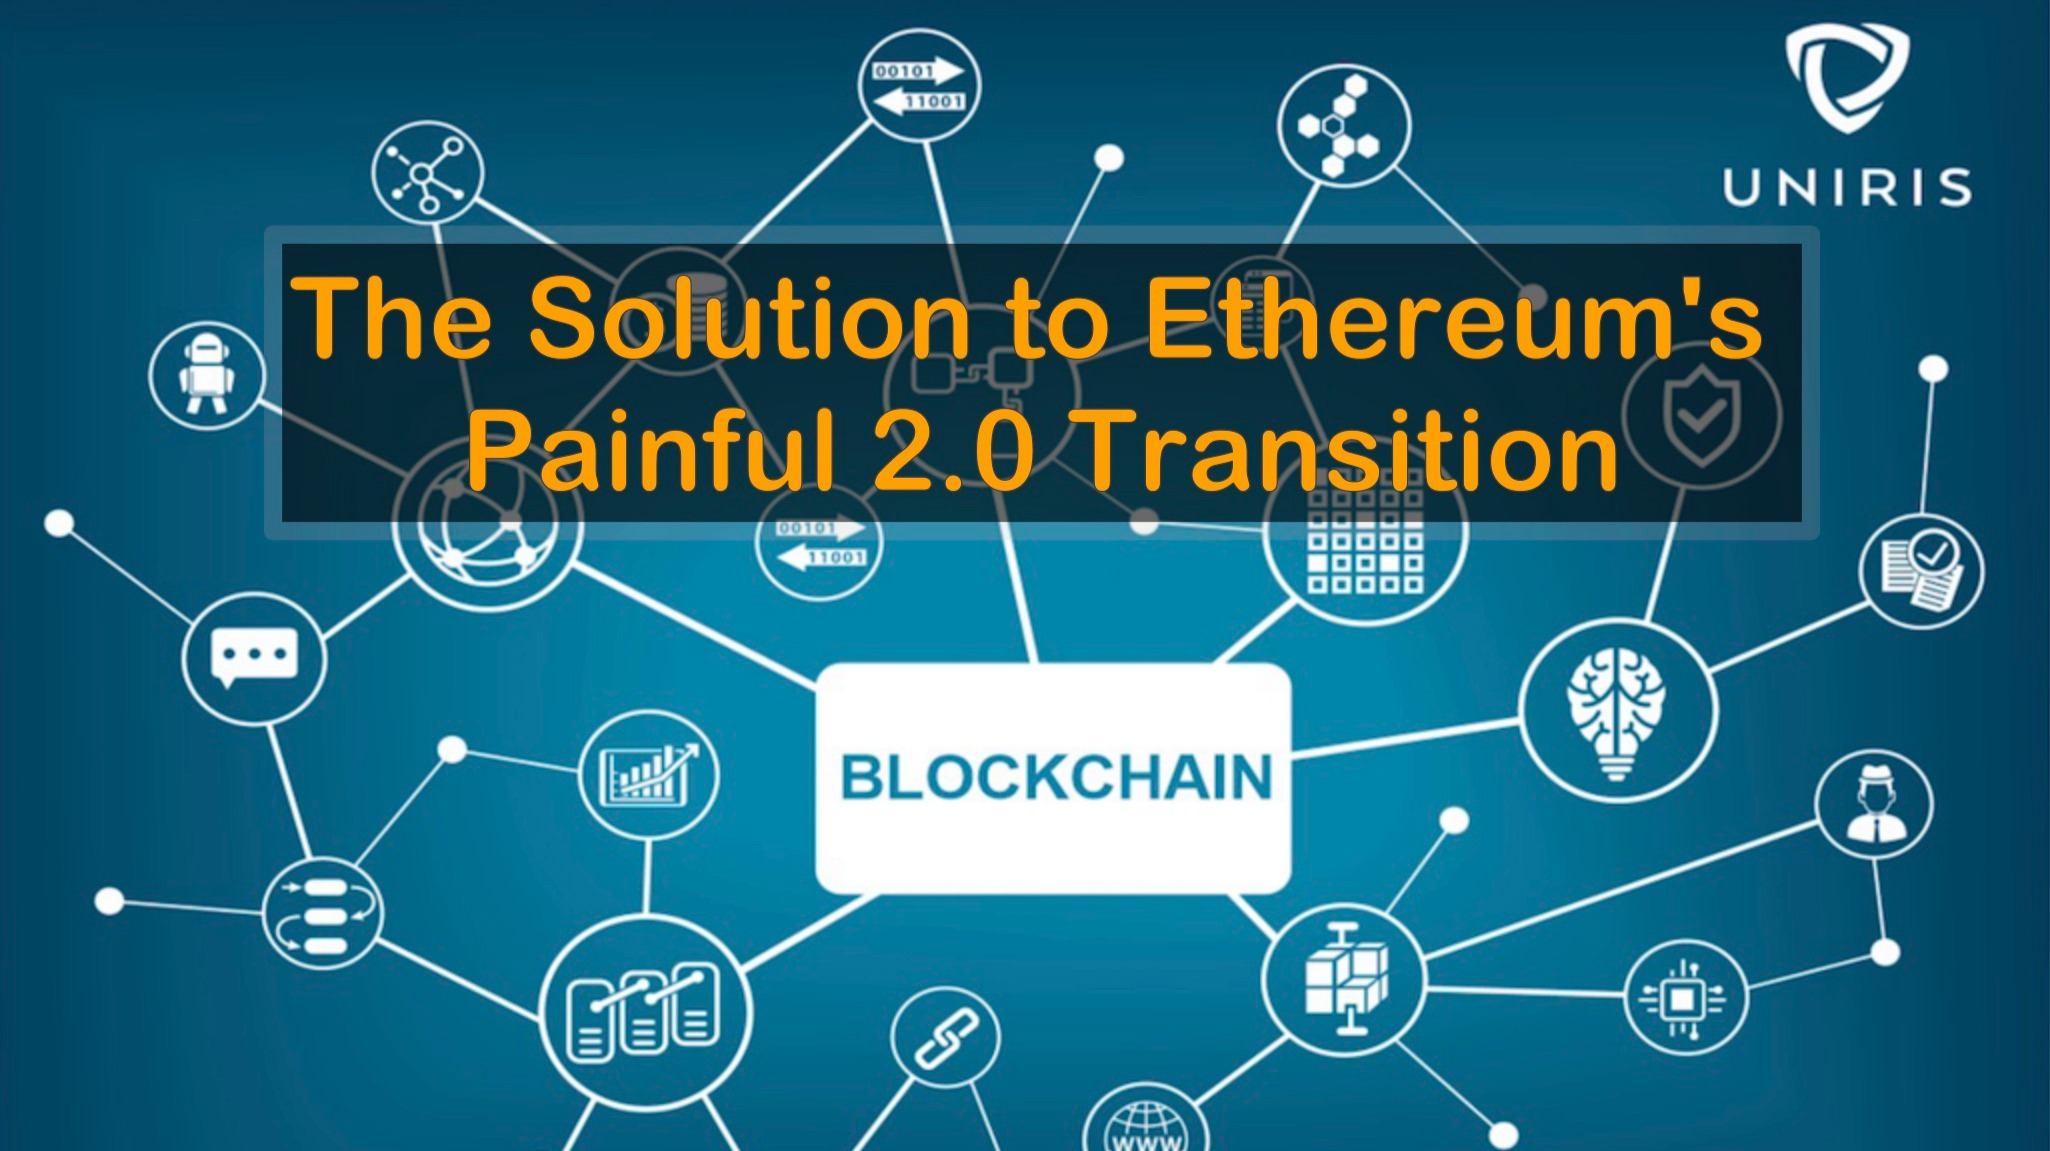 According to Uniris, Ethereum's Painful 2.0 Transition has a Solution